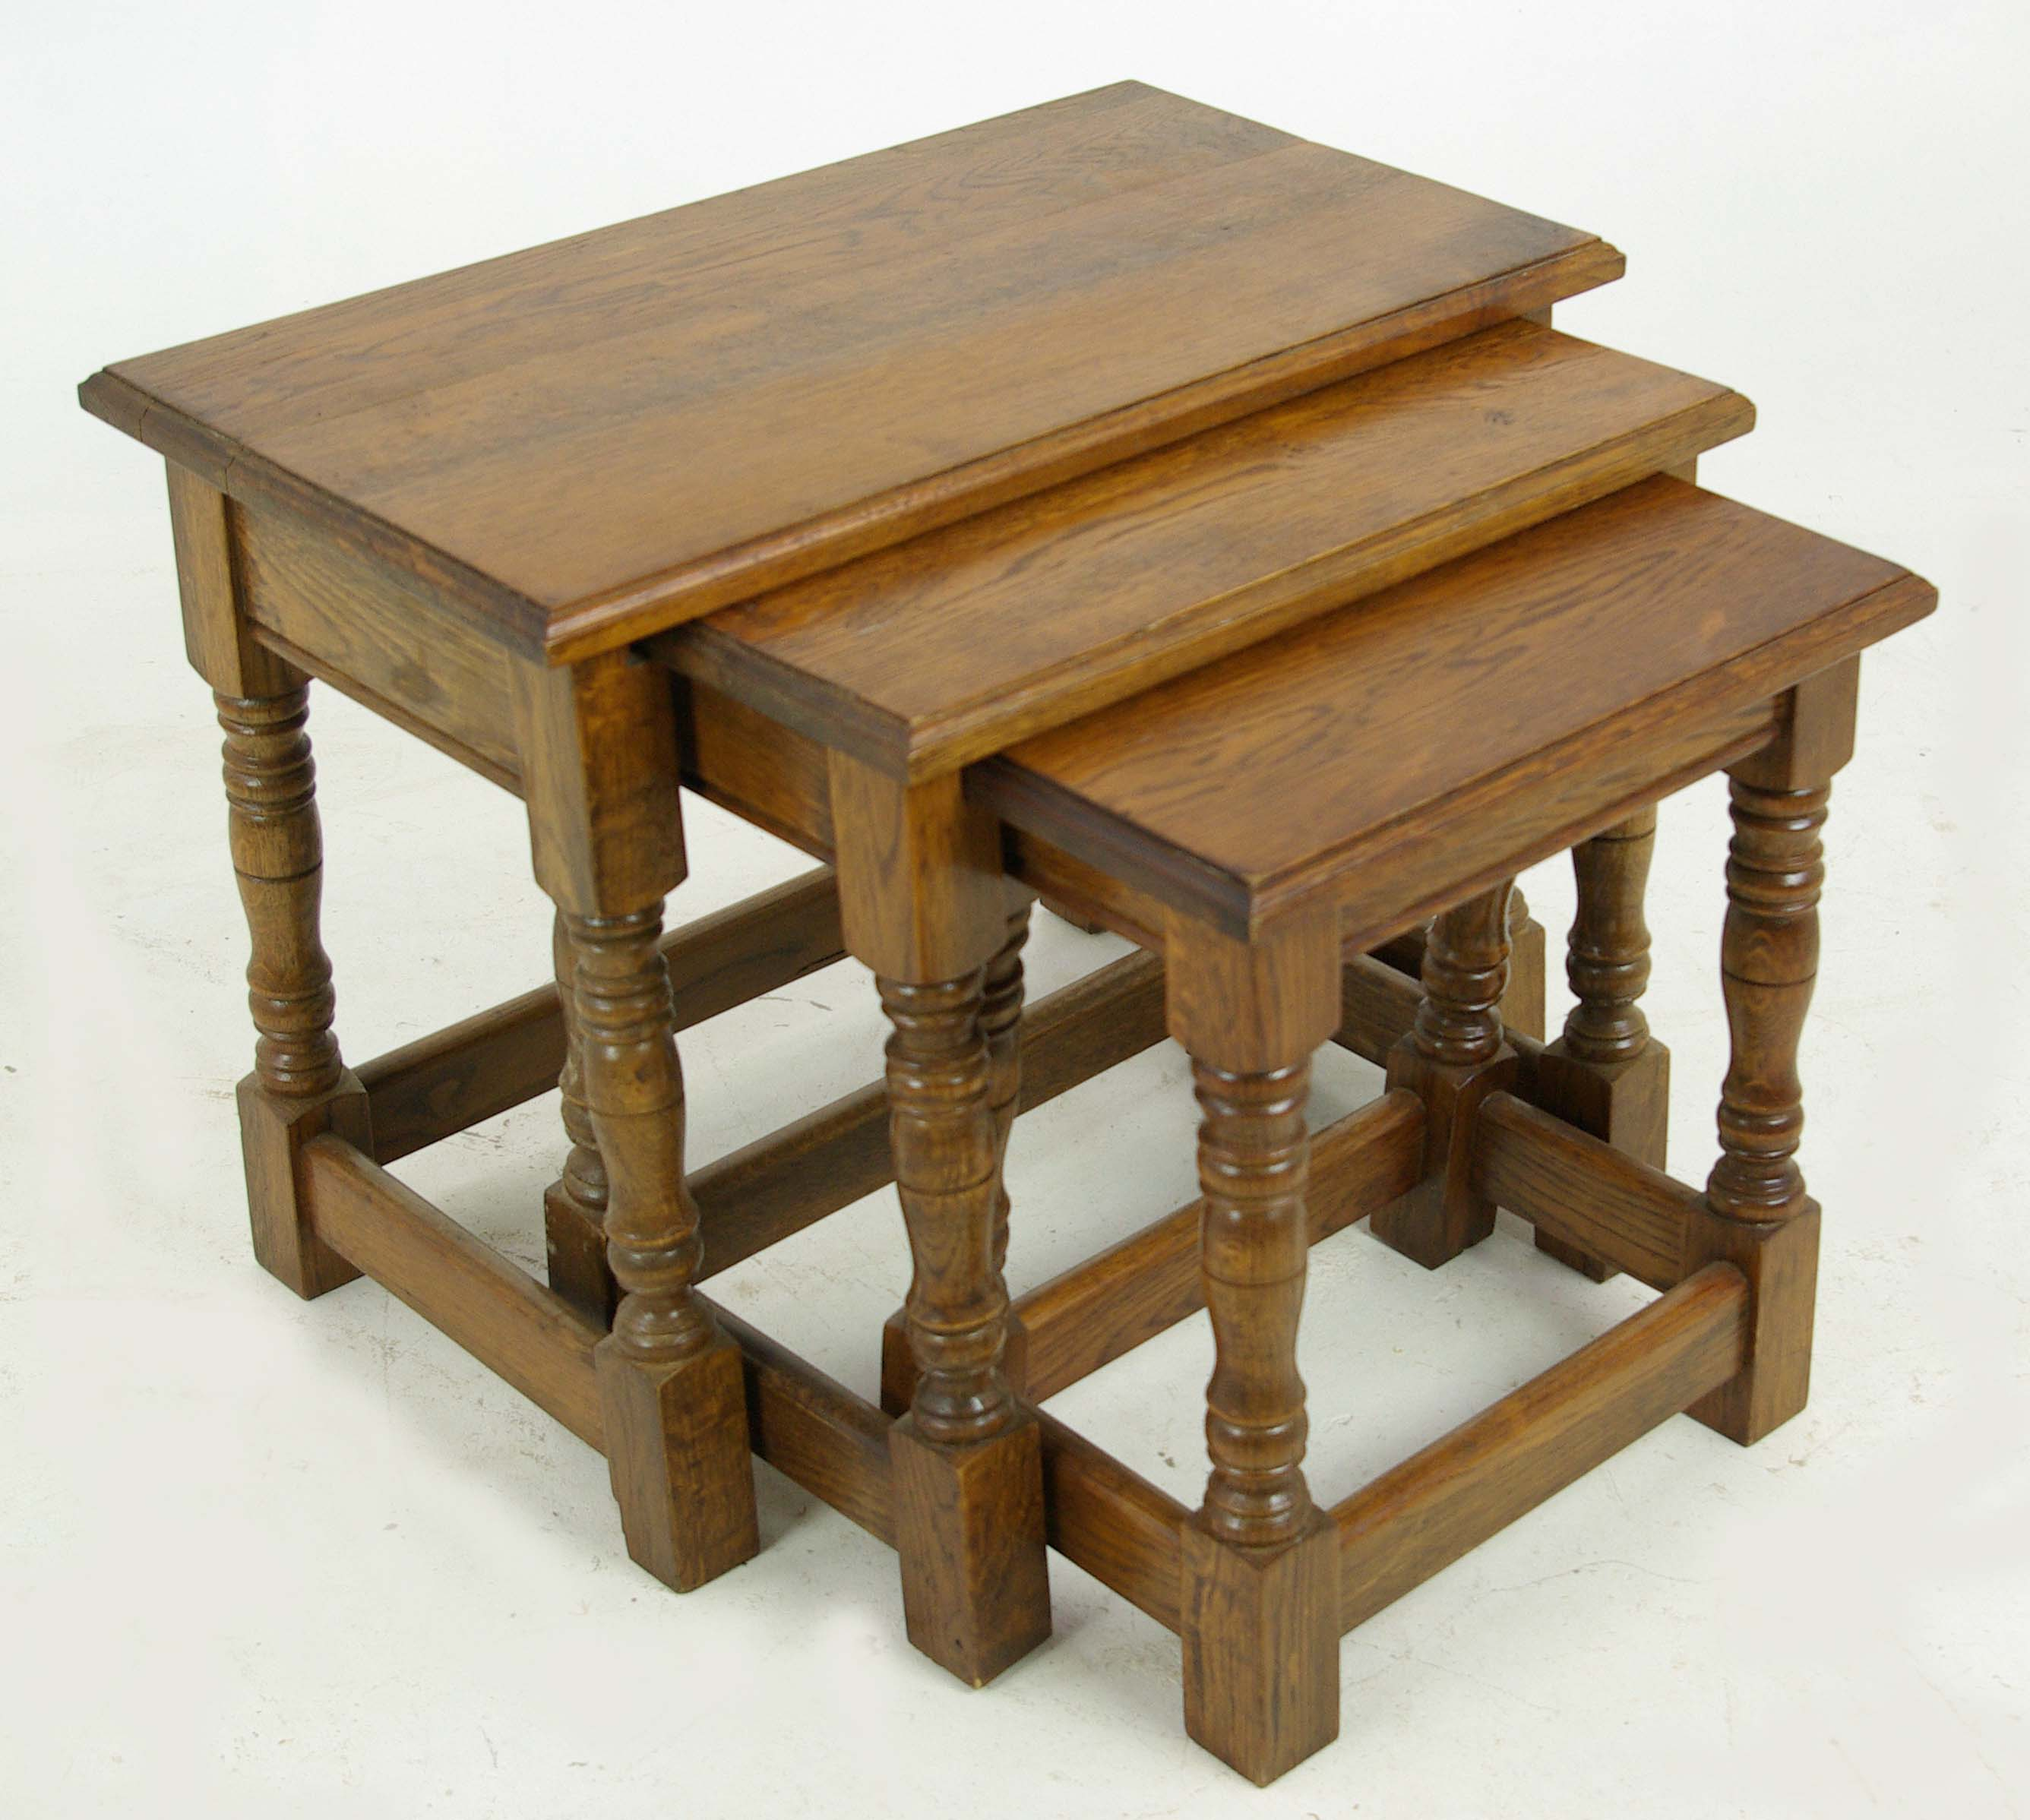 Beau Side Tables, Nesting Tables, Antique Occasional Tables, Antique Furniture,  Scotland 1950s, B982